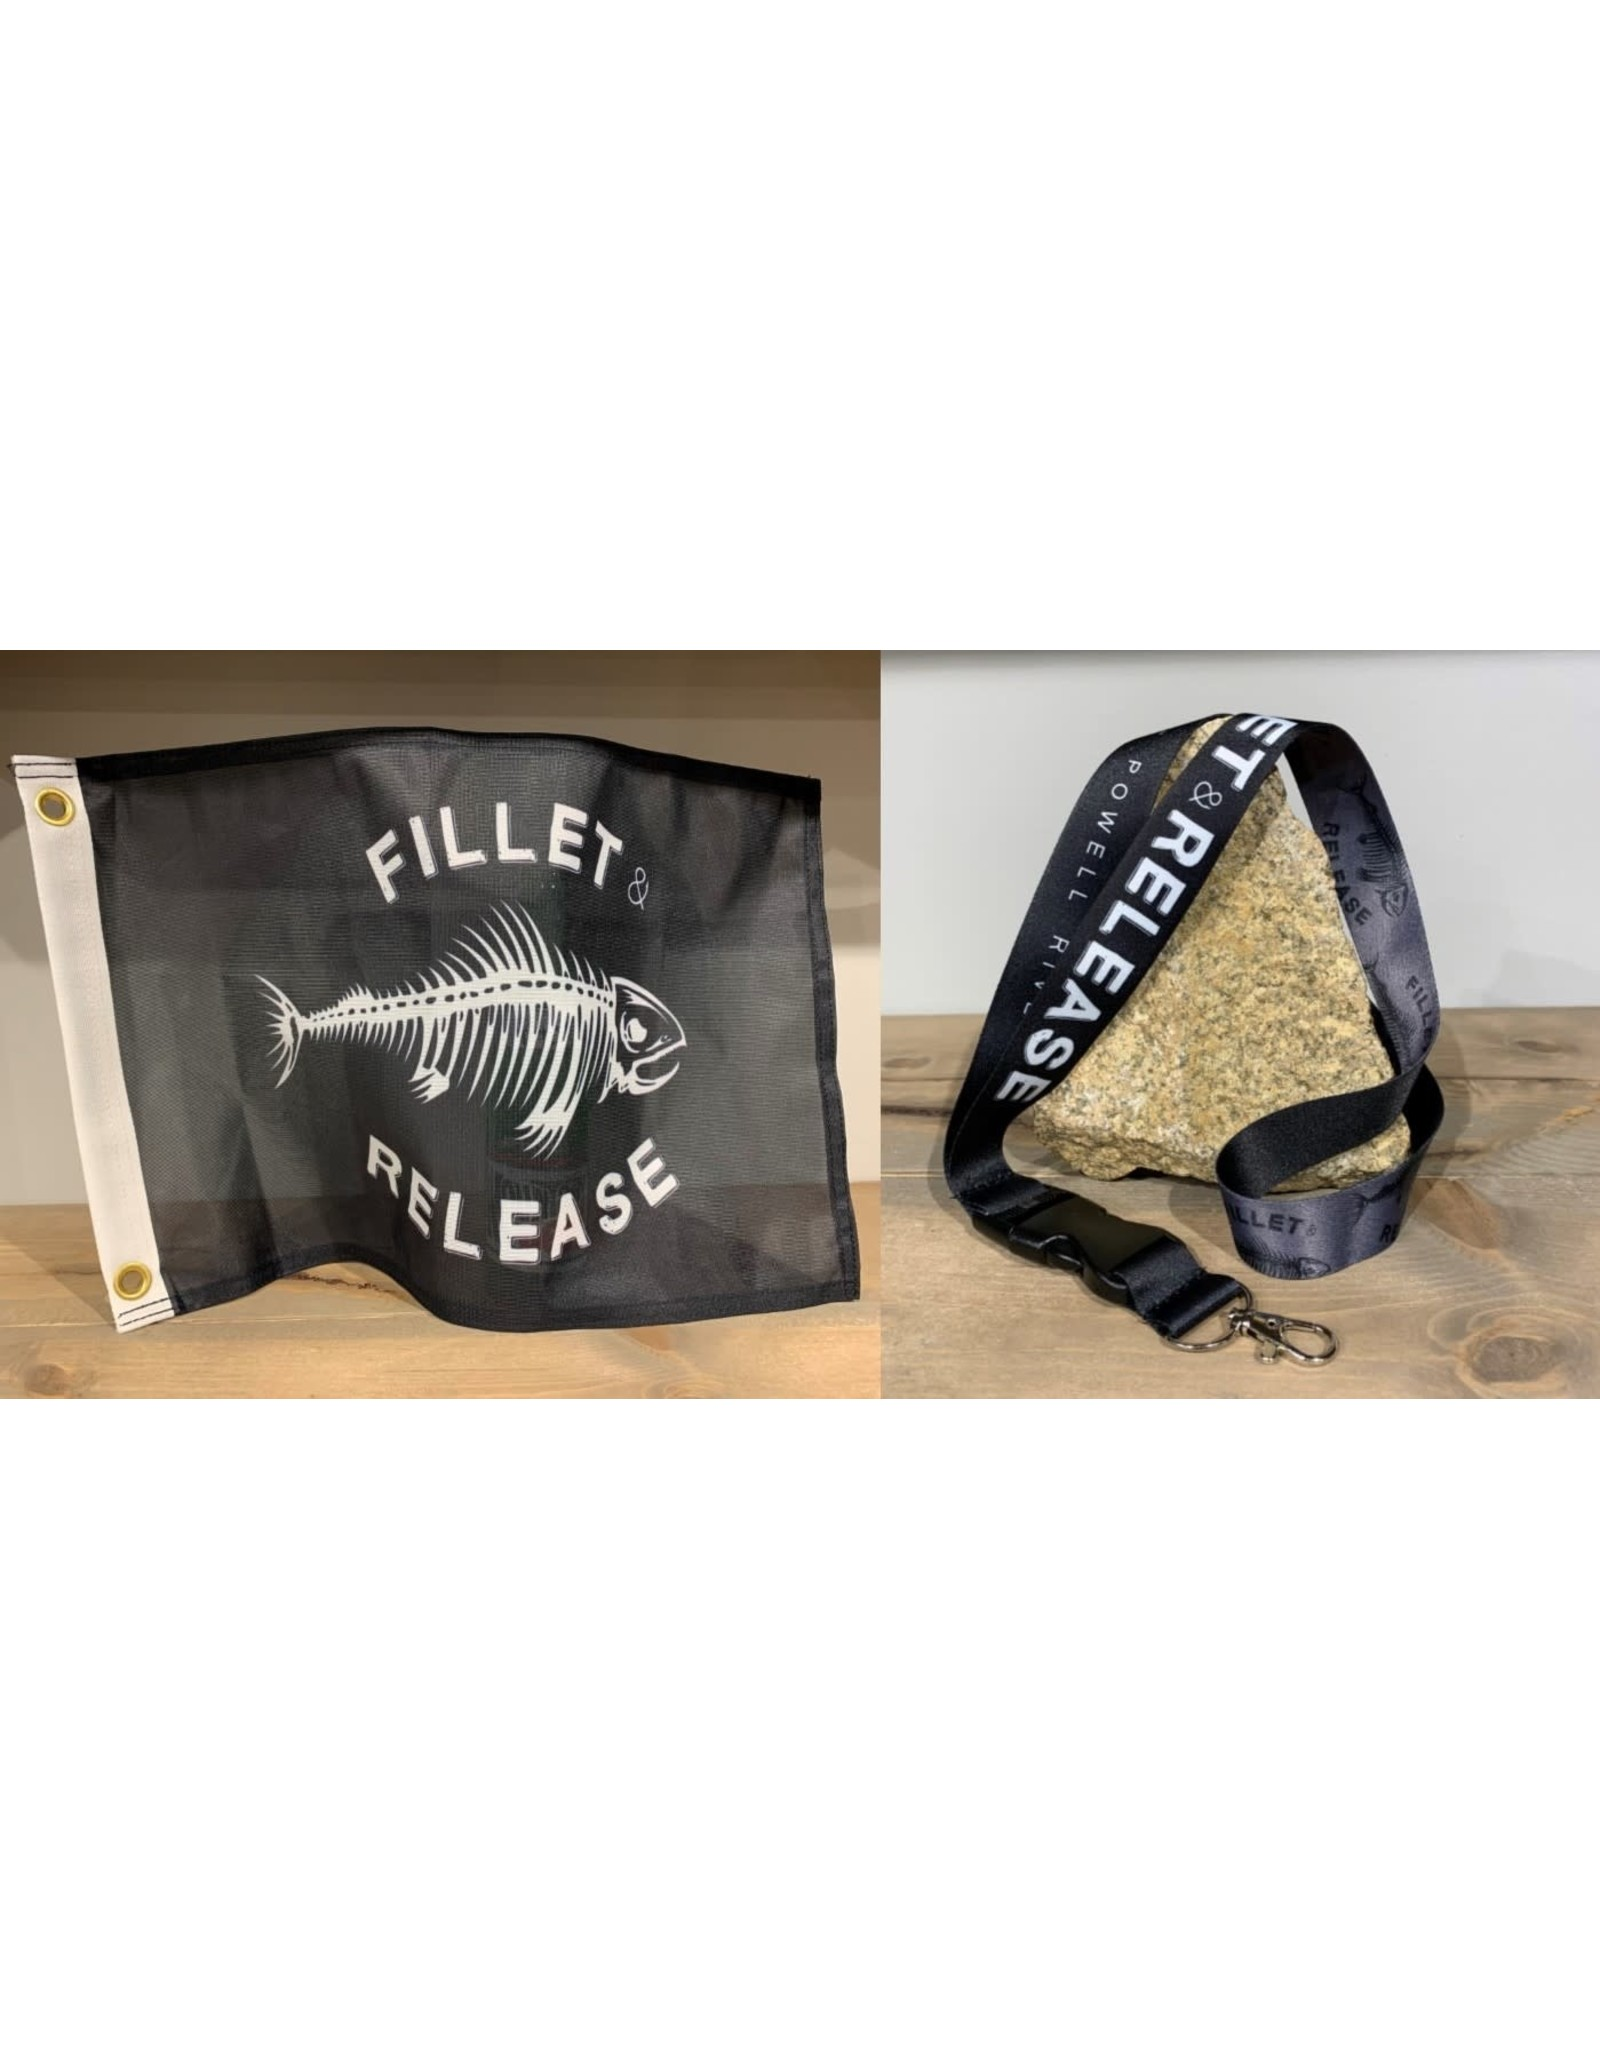 FLAGS UNLIMITED FILLET & RELEASE FLAG & KEYCHAIN COMBO